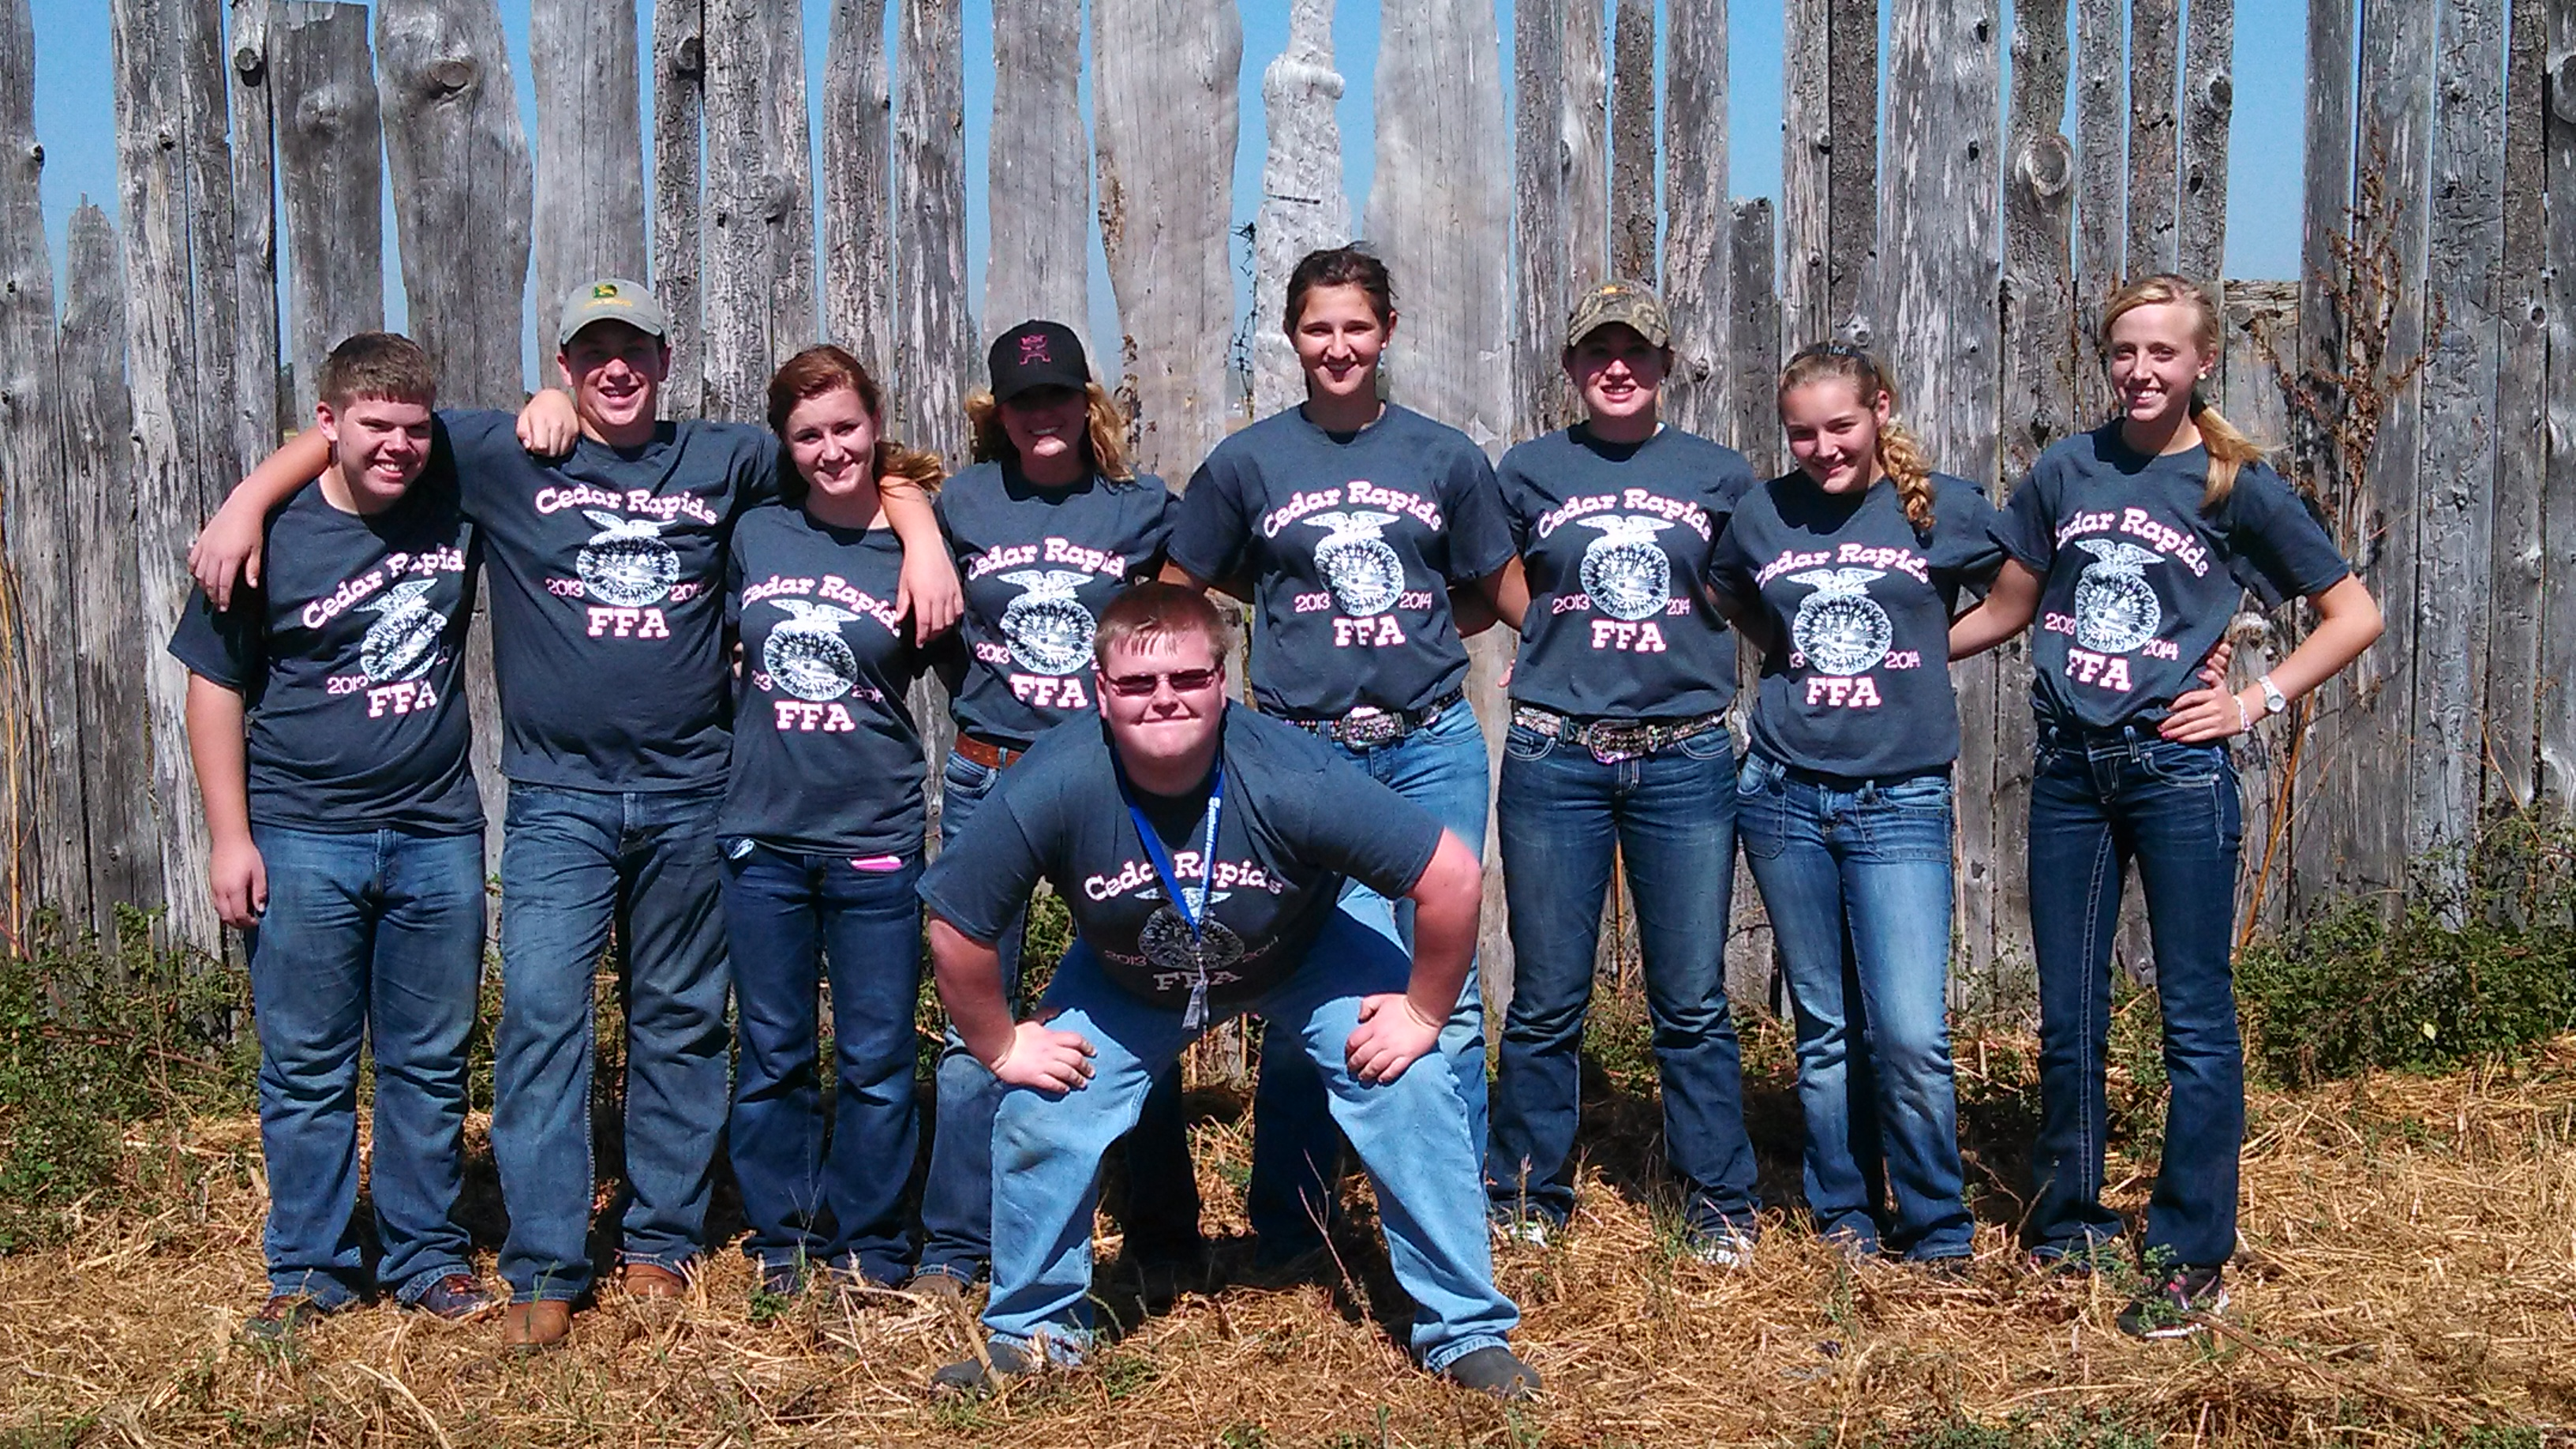 Design your own t shirt louisville ky - A Fun Group During State Range Judging Competition T Shirt Photo